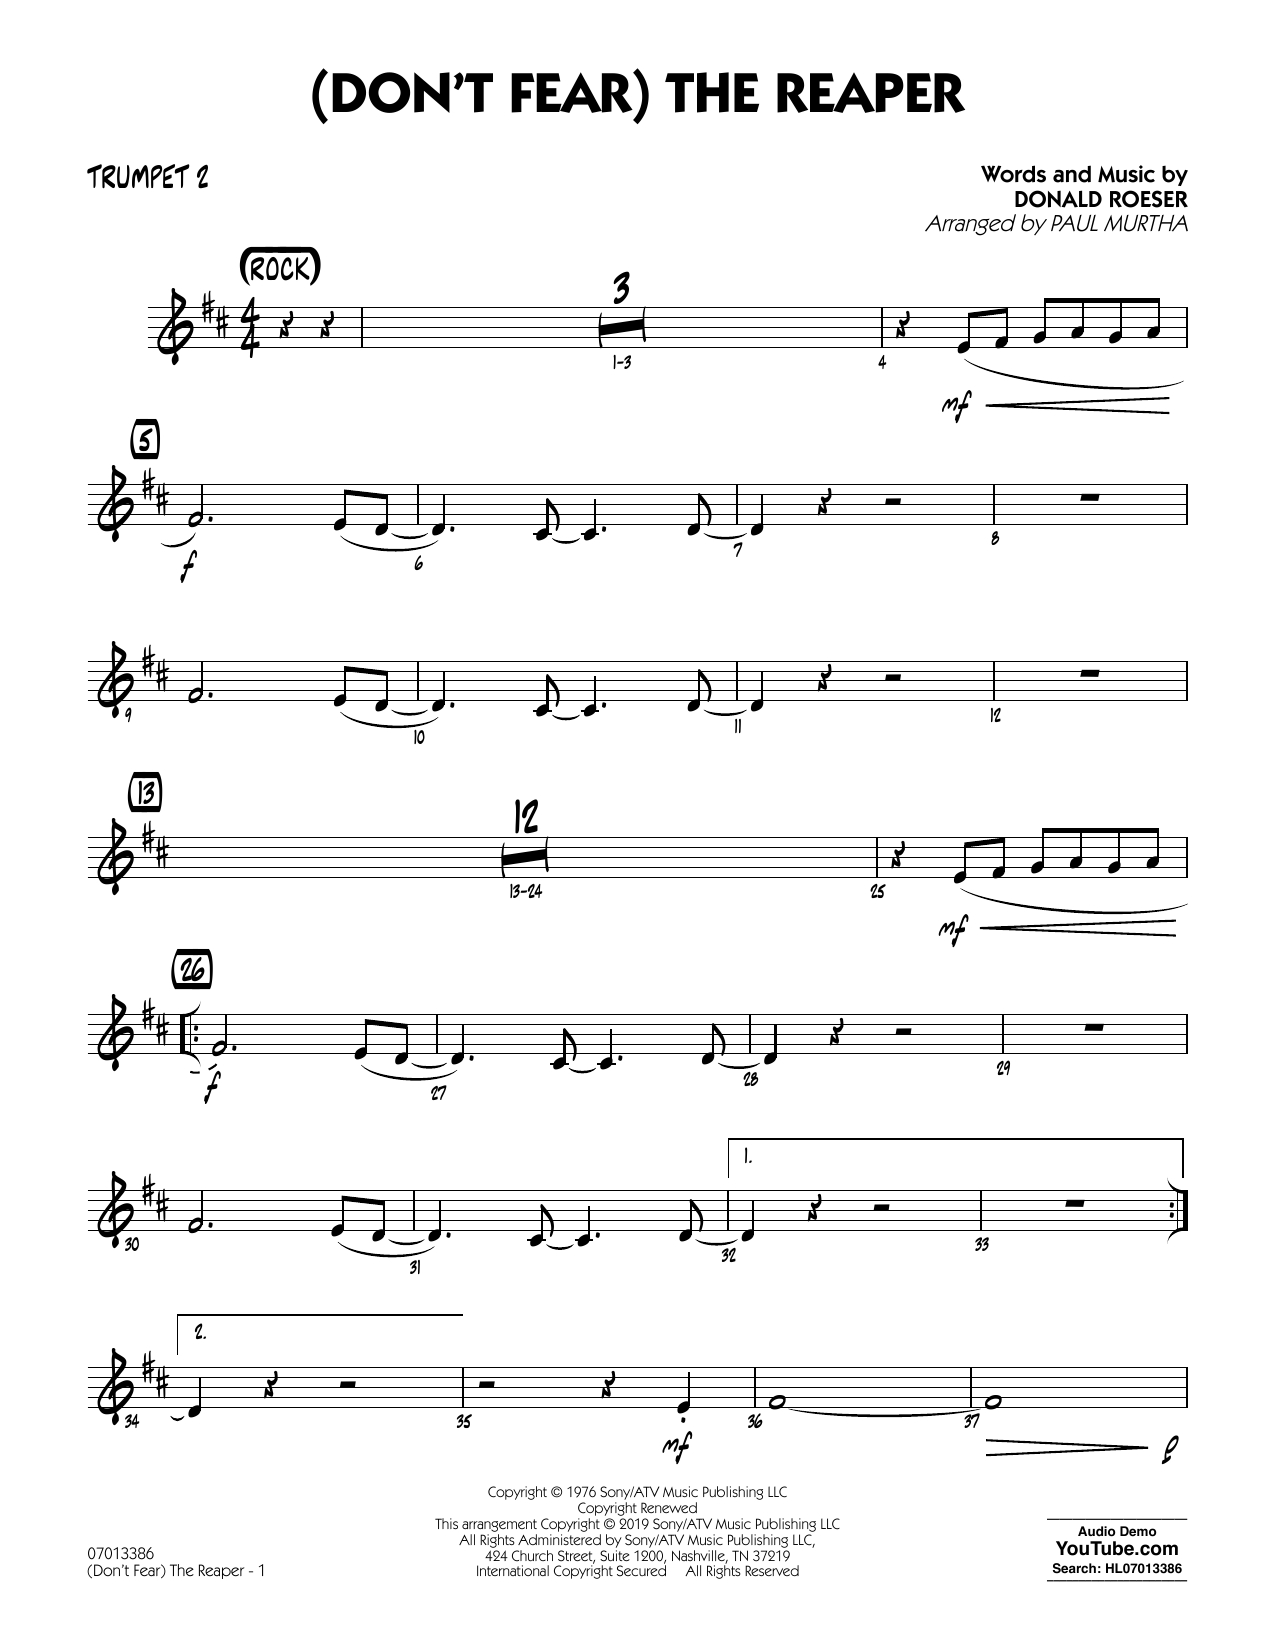 Blue Oyster Cult (Don't Fear) The Reaper (arr. Paul Murtha) - Trumpet 2 sheet music preview music notes and score for Jazz Ensemble including 2 page(s)